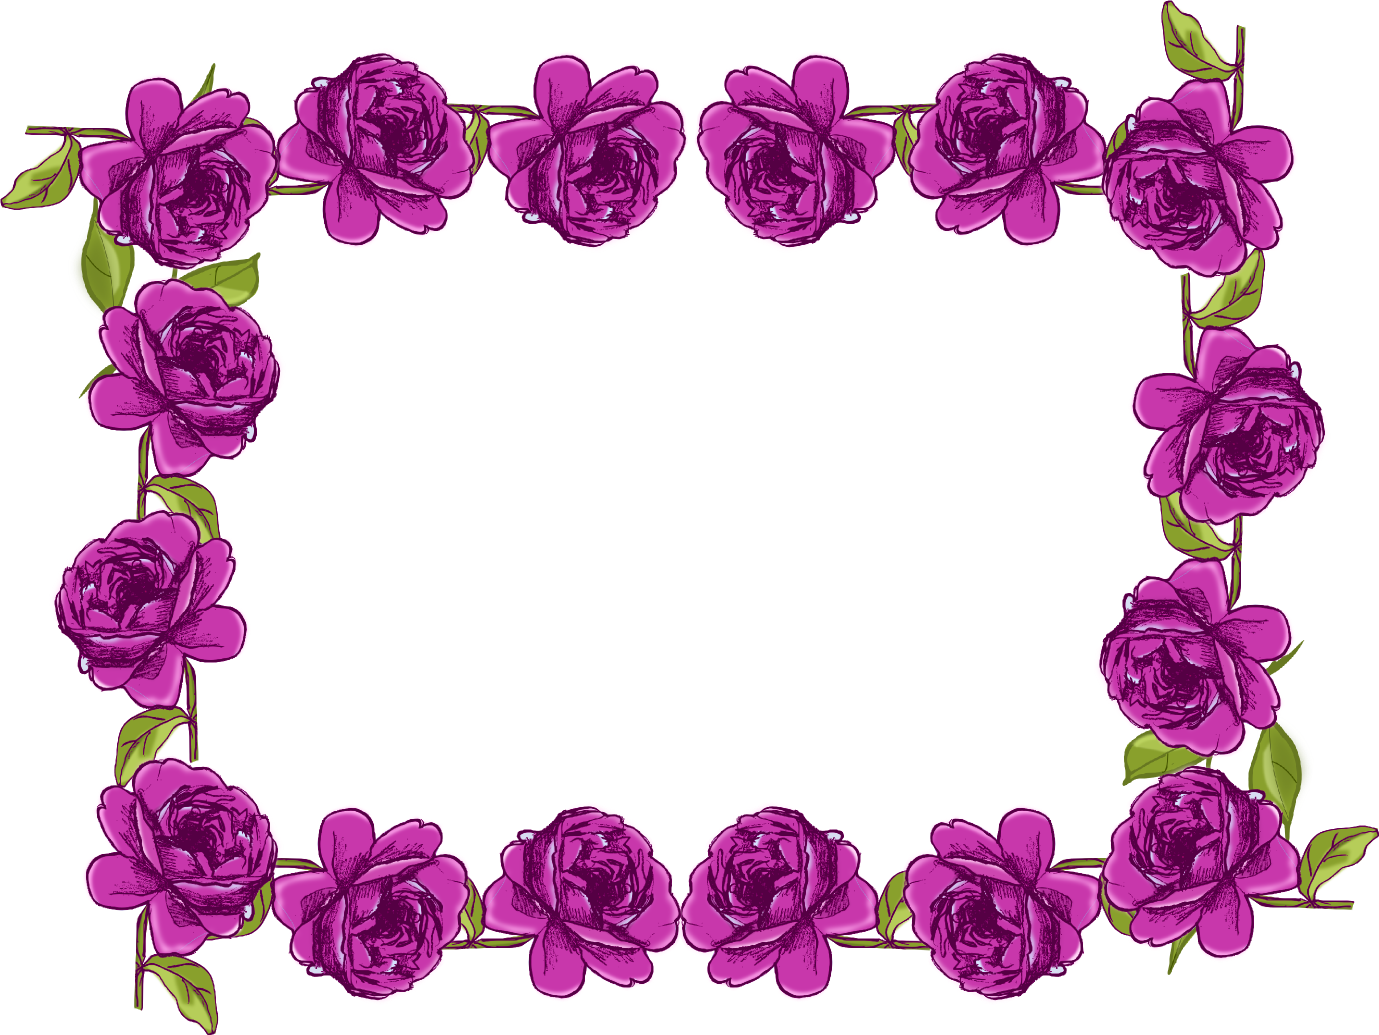 Purple flower border clipart free svg transparent library Purple Flower Border Free Download Clip Art - carwad.net svg transparent library